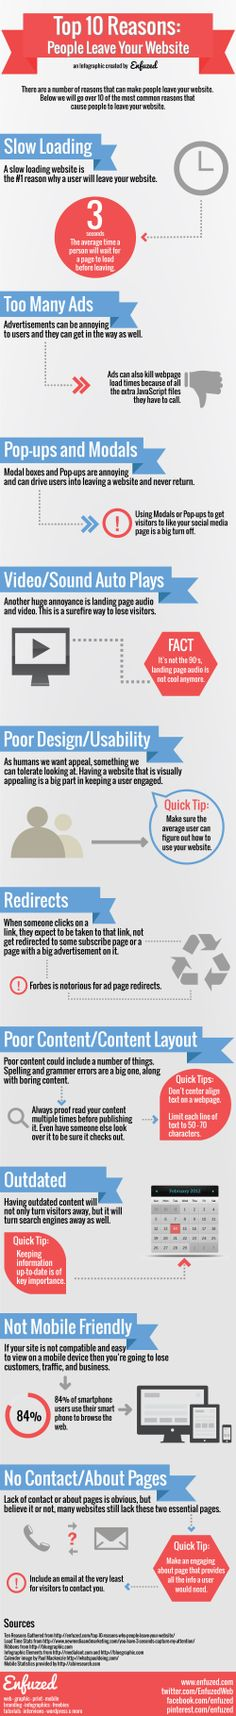 Top 10 Reasons People Leave Your Website #Infographic created by @Enfuzed